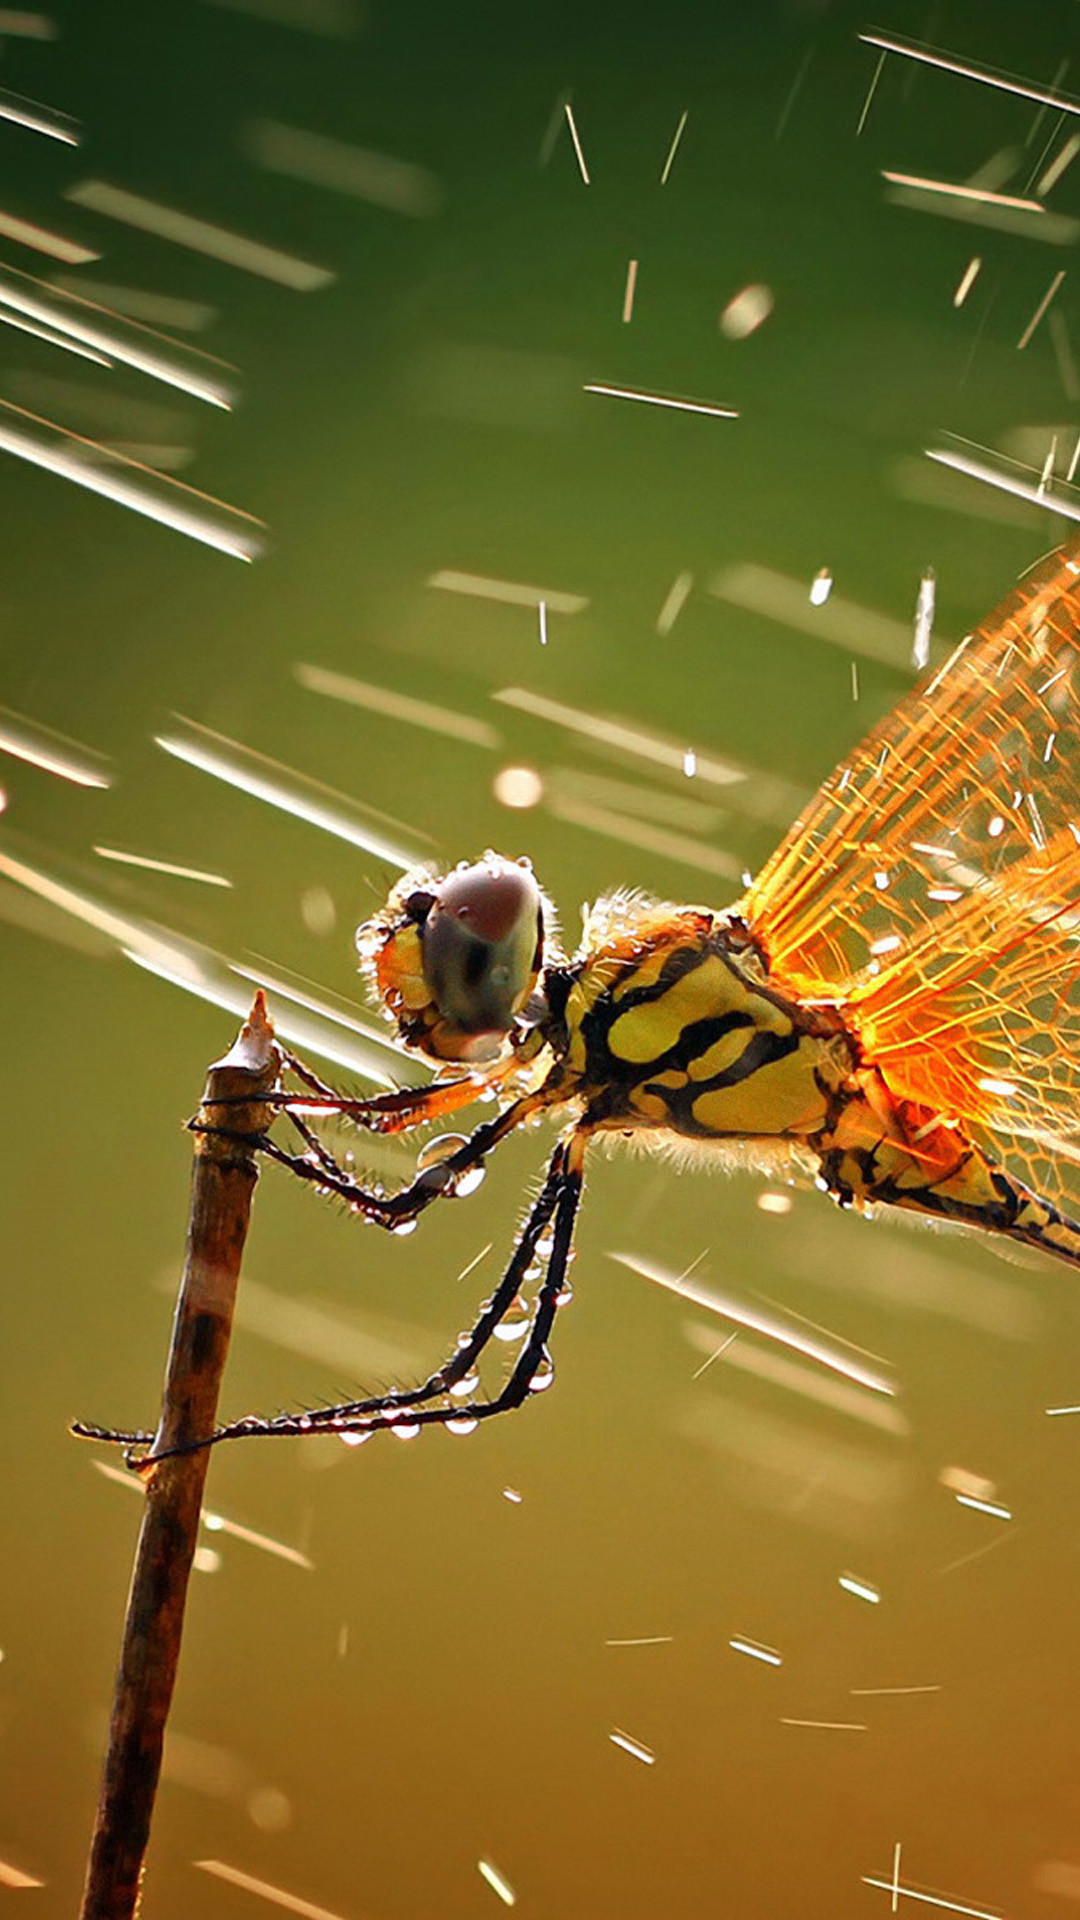 insect arthropod black and gold garden plant fly drops animal nature